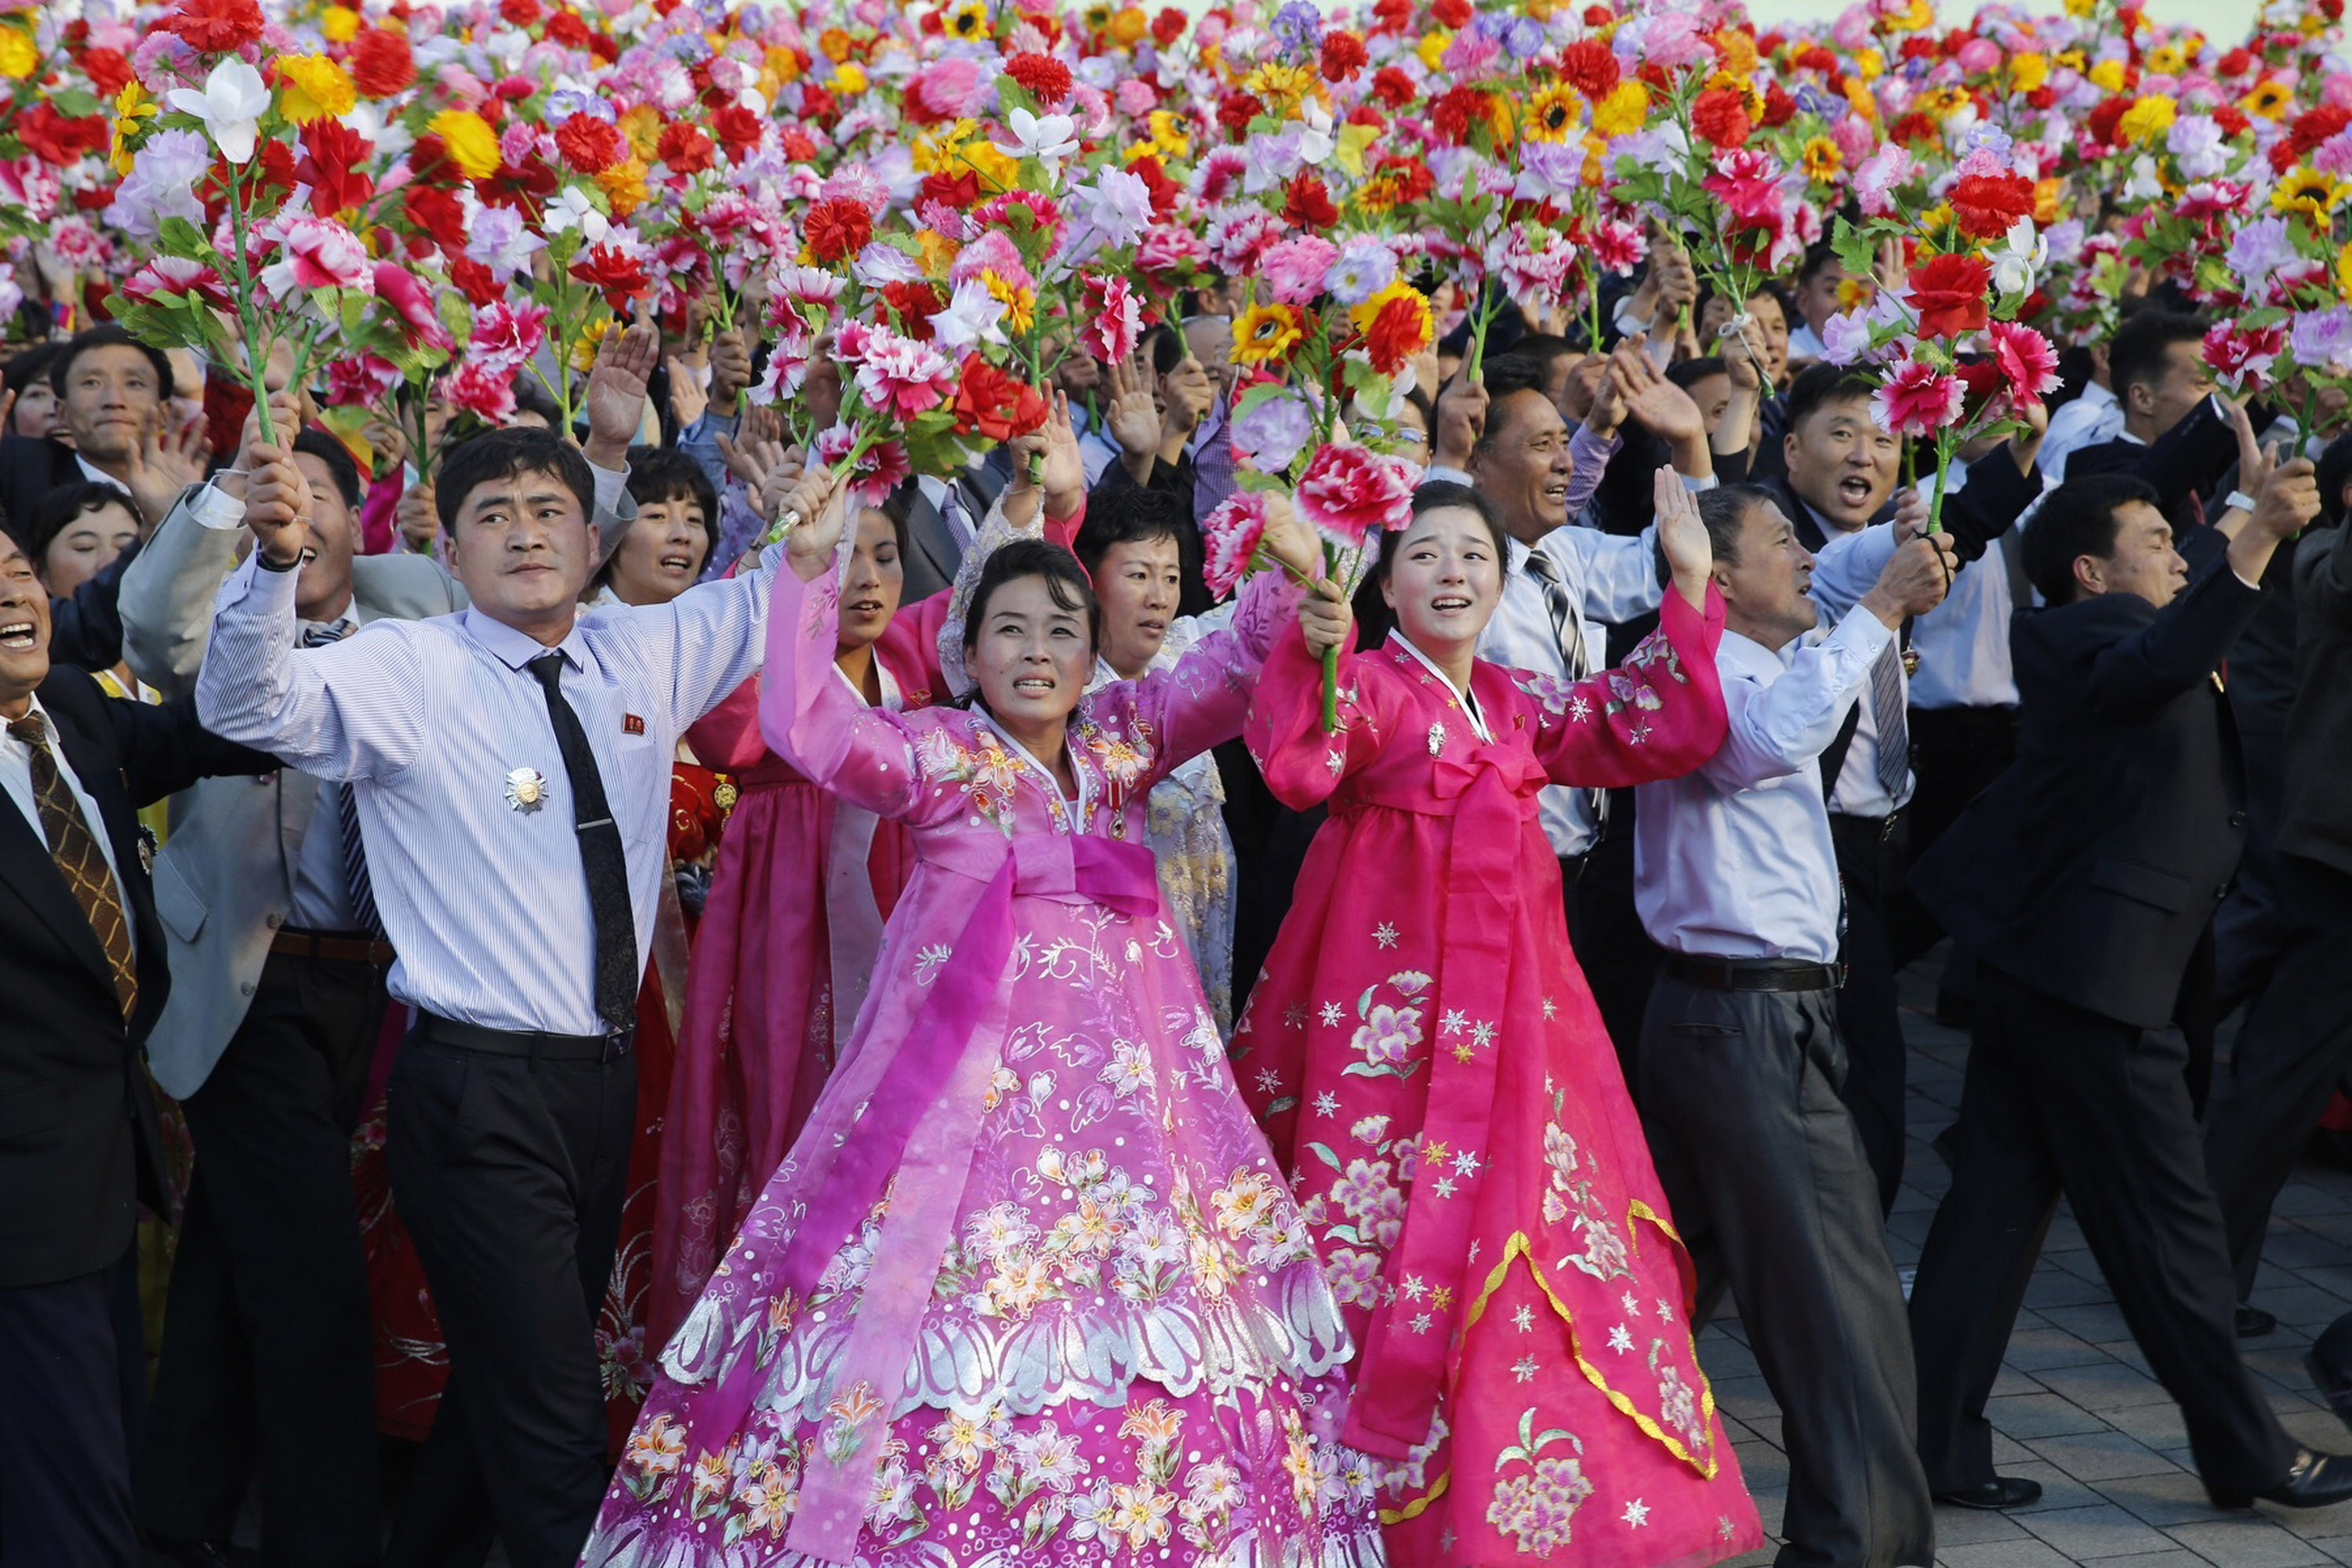 Participants wave flowers during a mass military parade at Kim Il Sung Square to mark the 70th anniversary of its ruling Workers' Party of Korea on Oct. 10. 2015, in Pyongyang